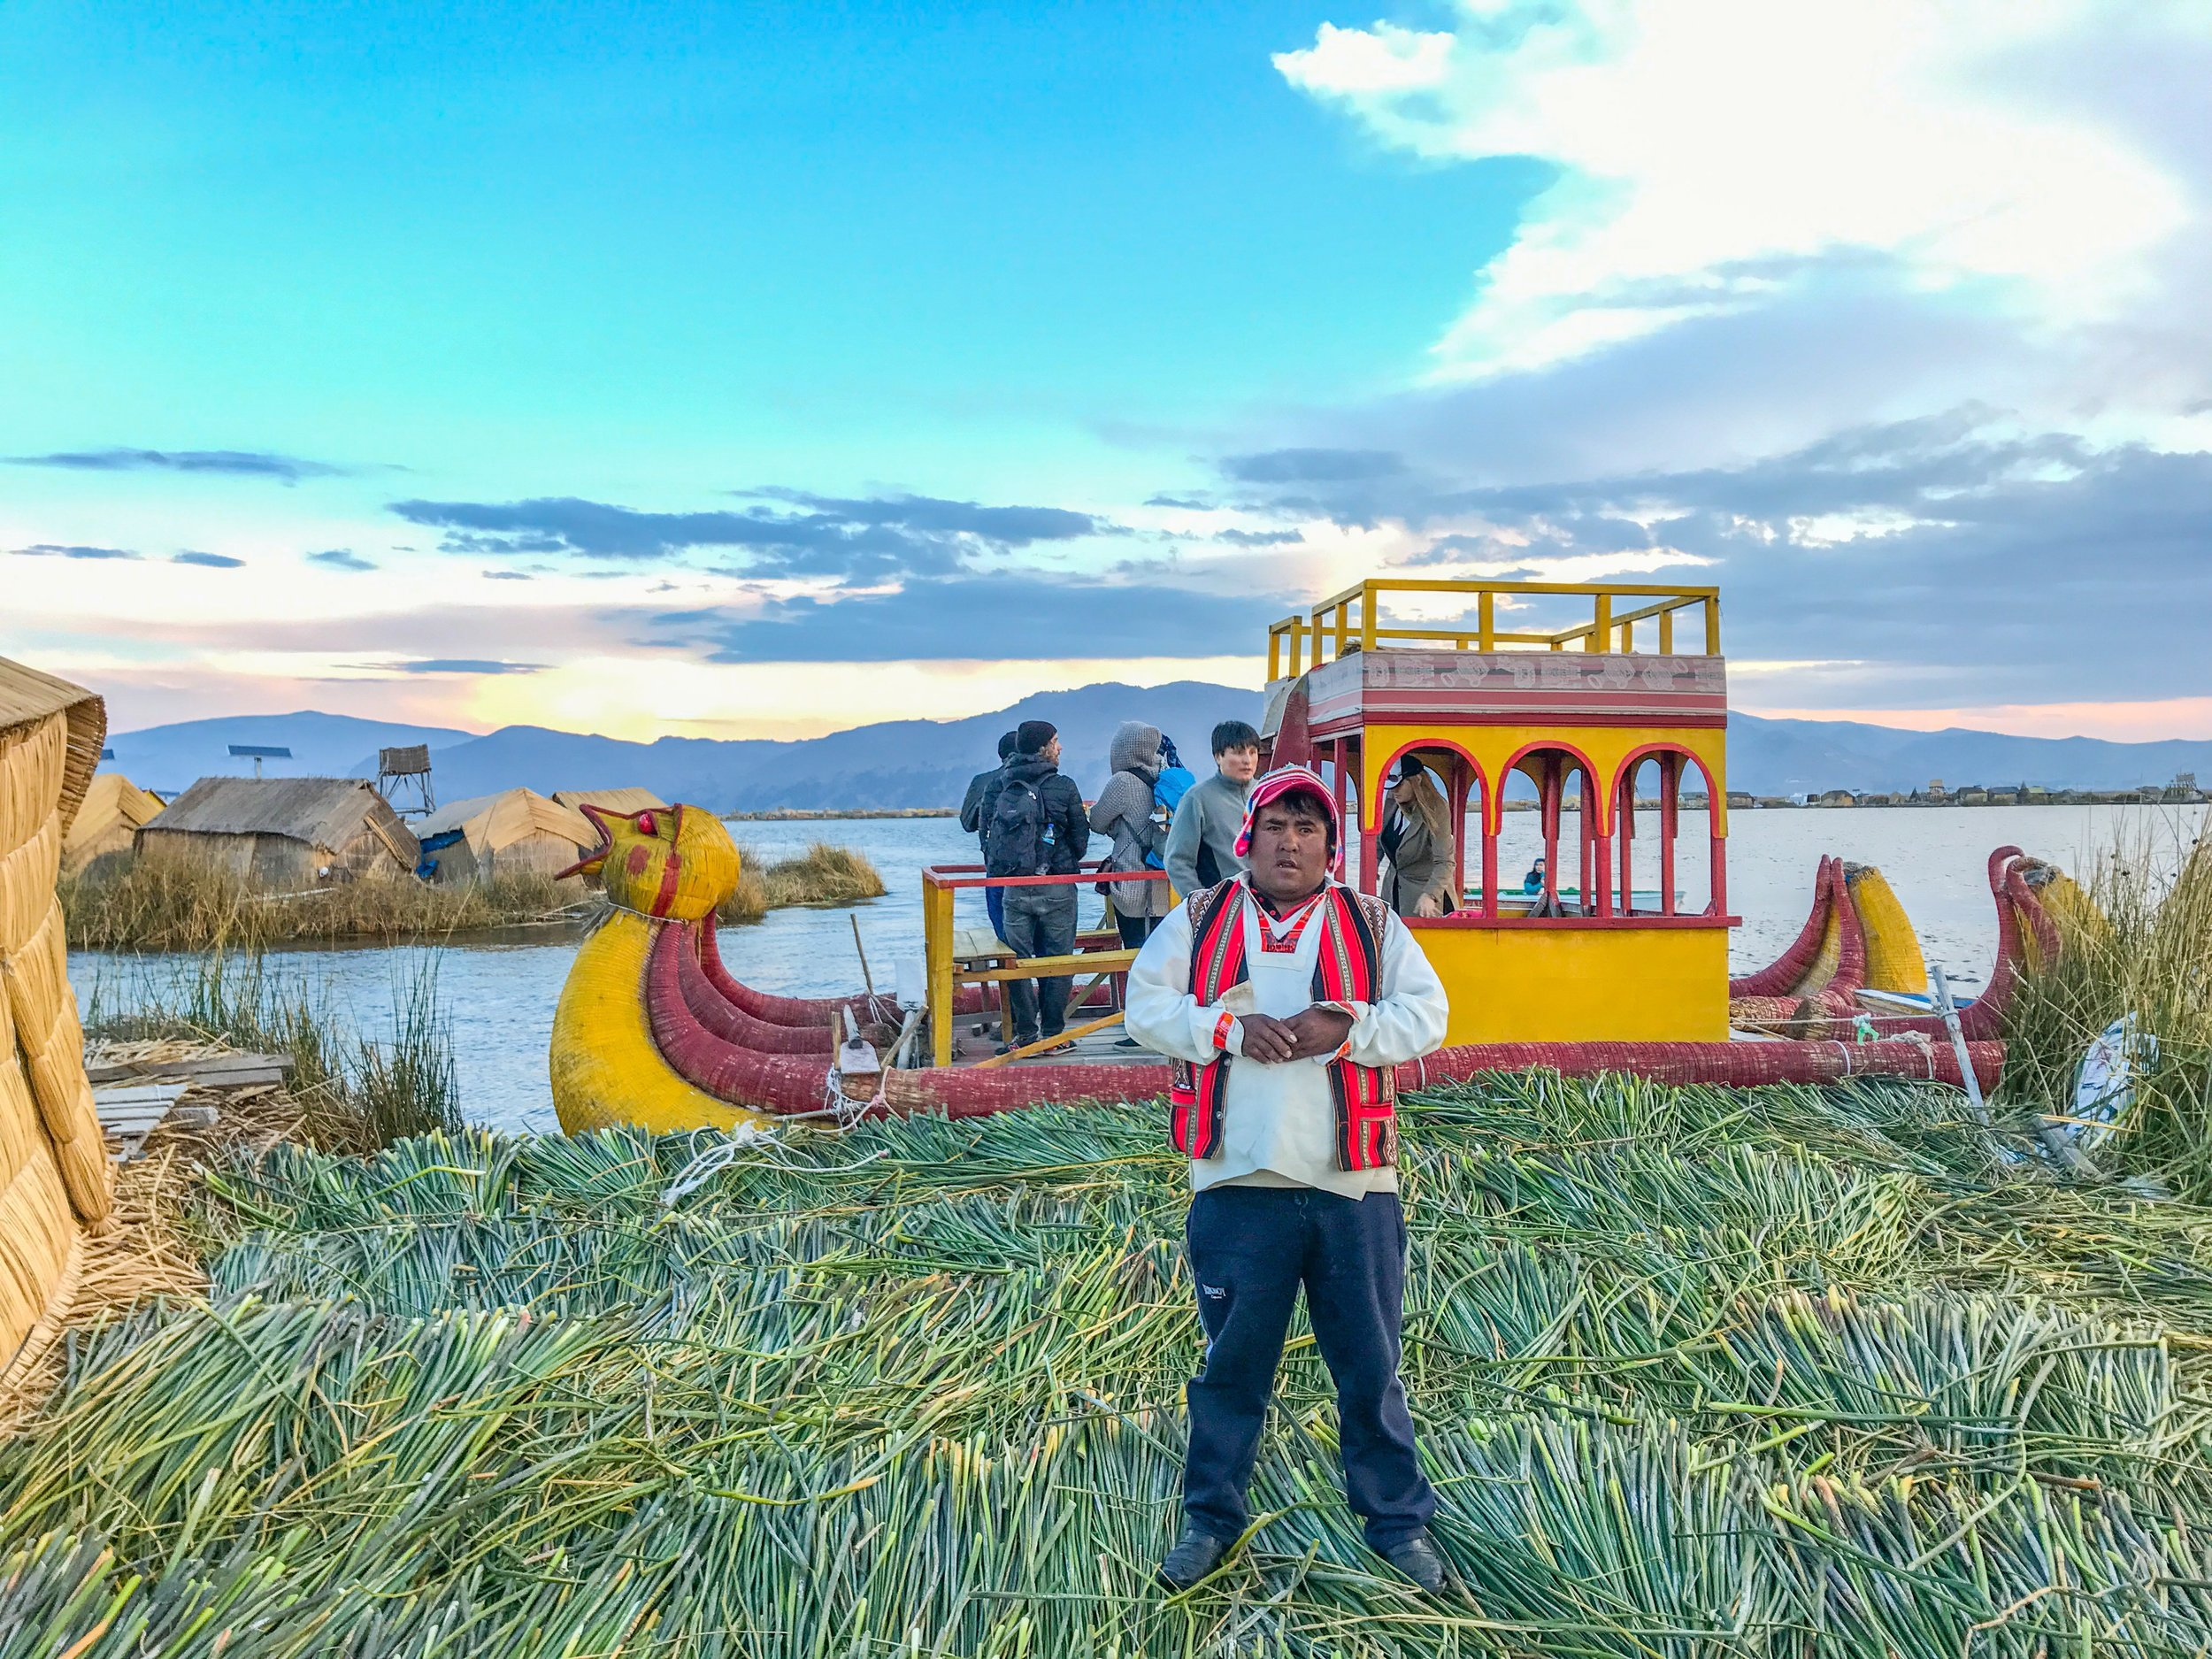 The leader of one of 90 reed islands of the Uros people in Lake Titicaca